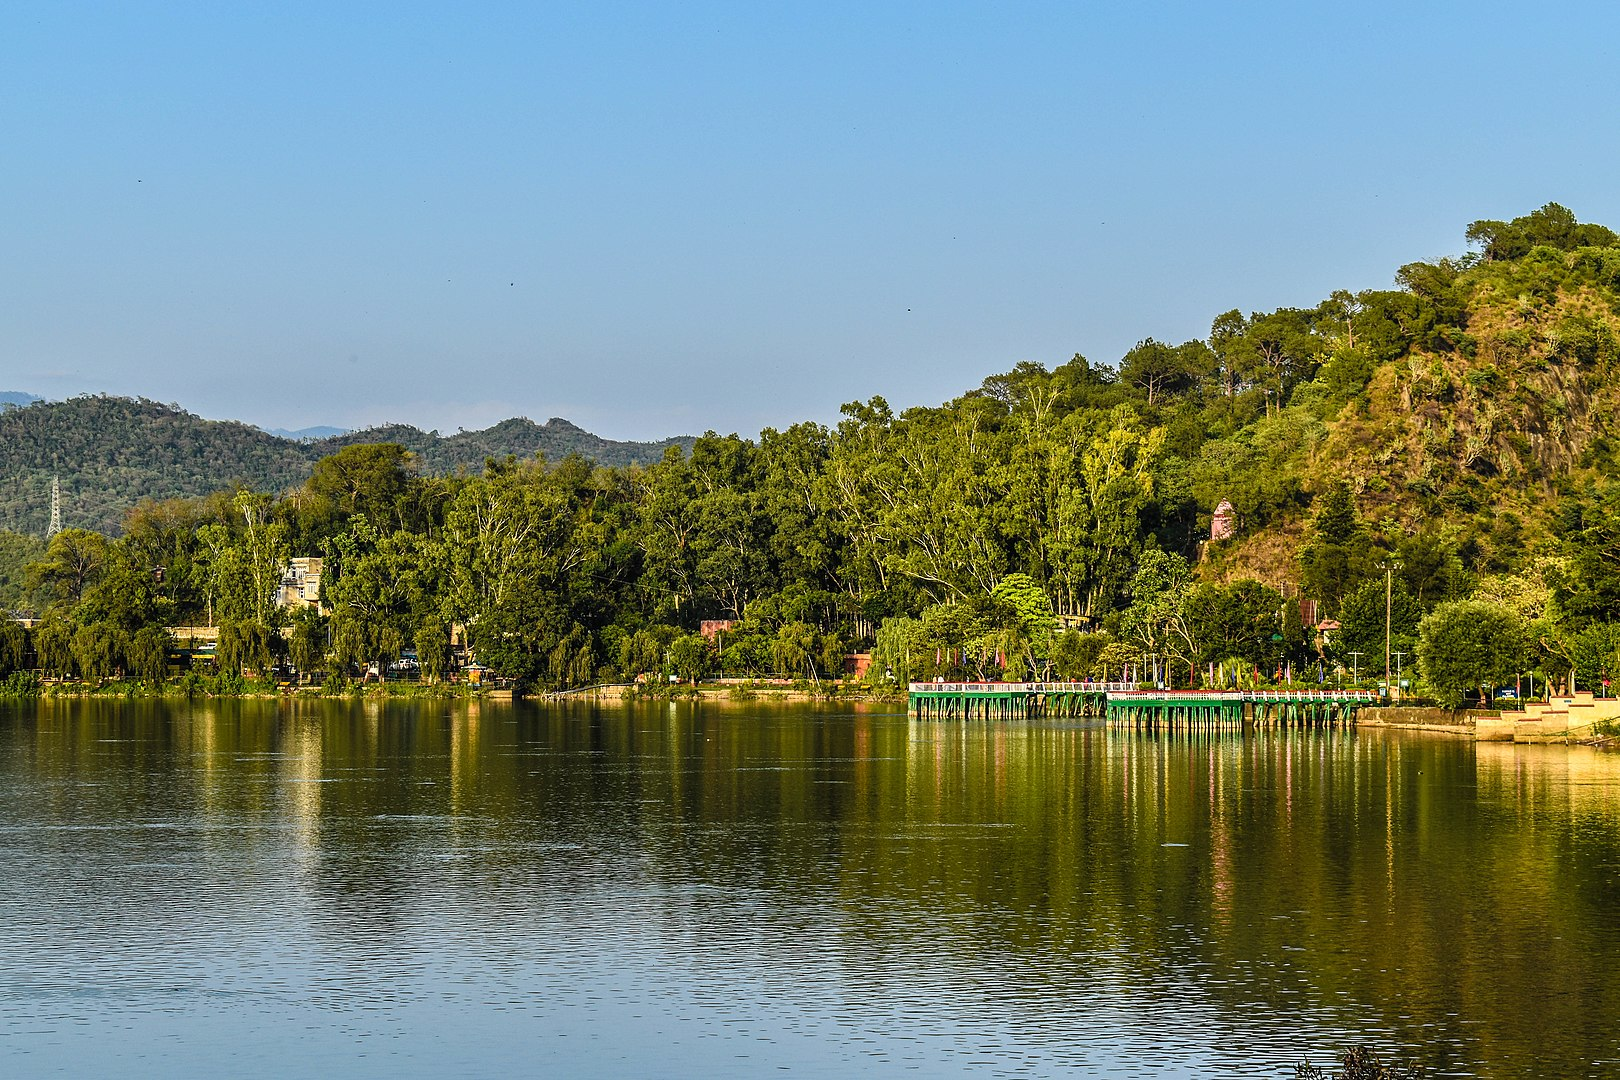 Mansar Lake Development Plan in Jammu